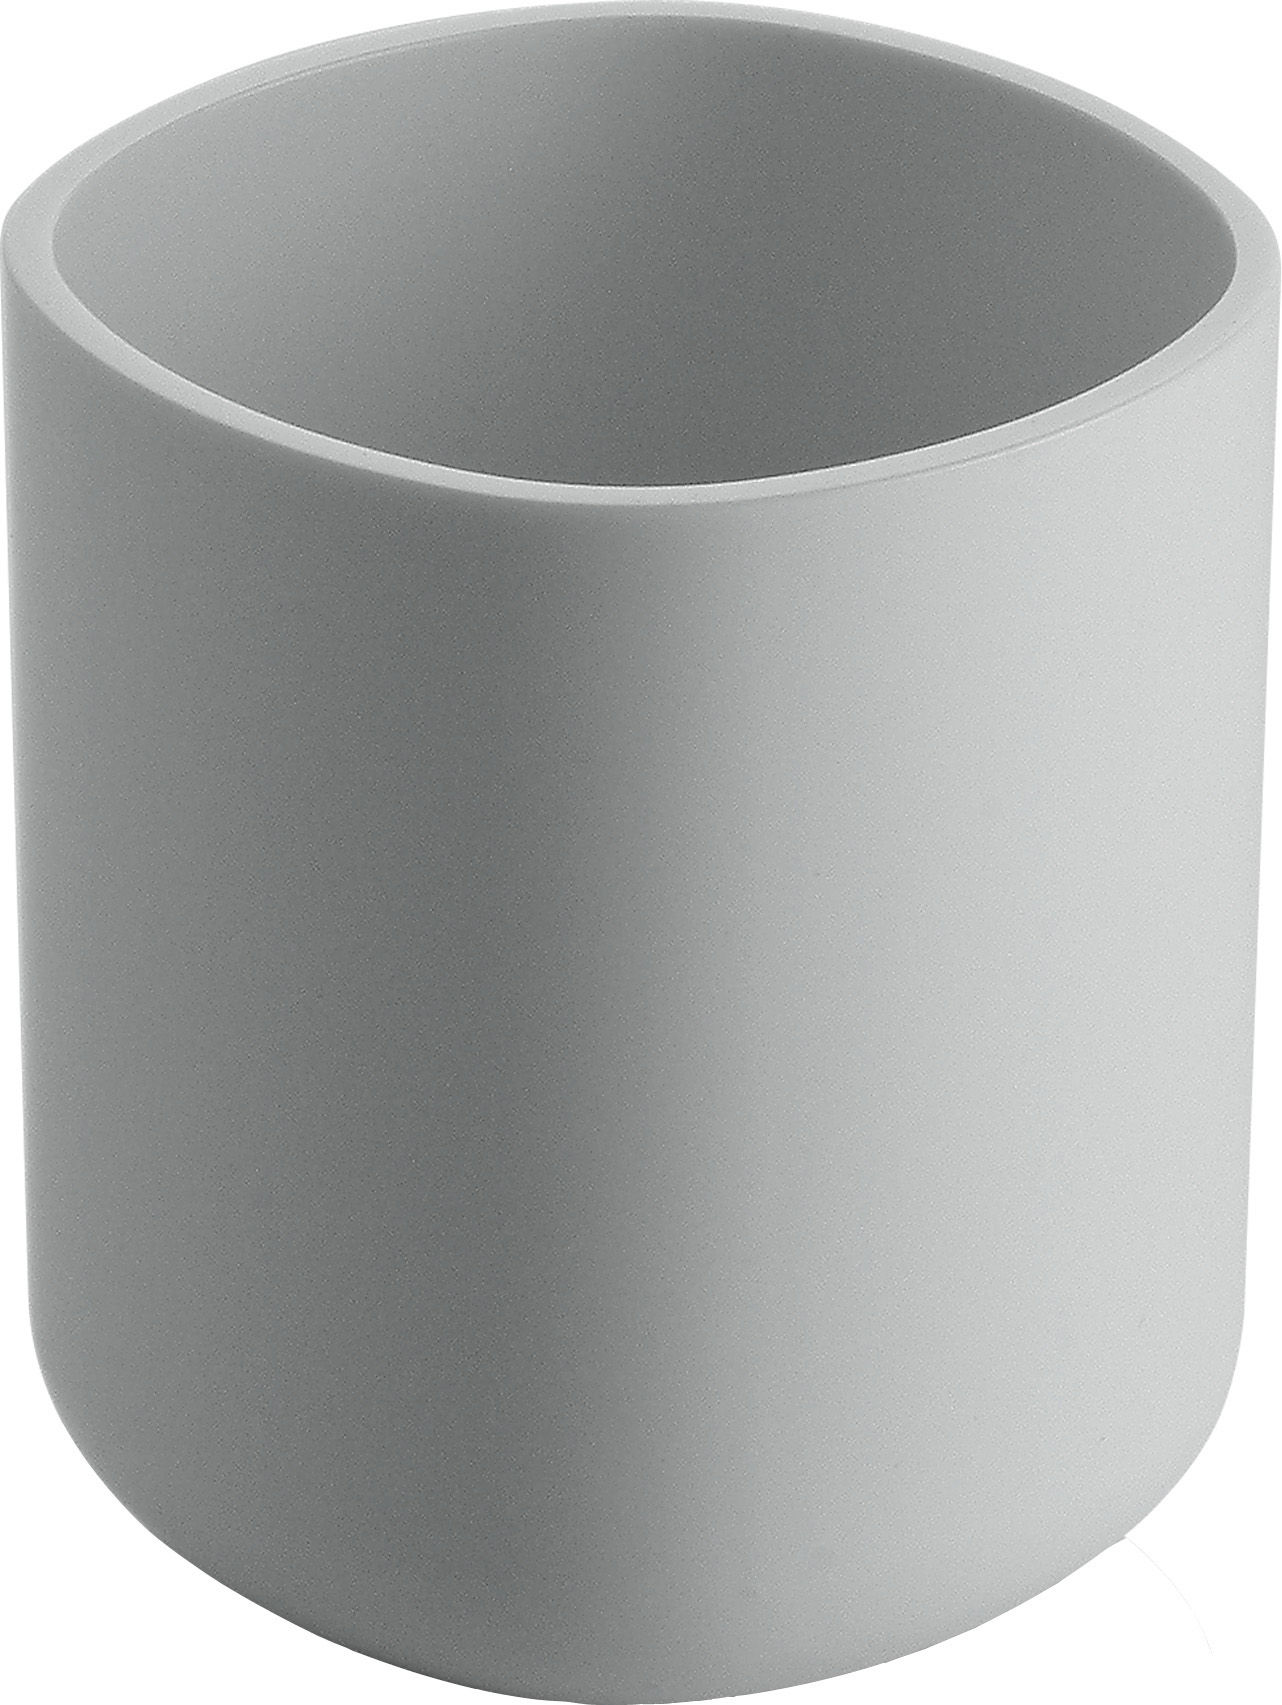 Decoration - For bathroom - Birillo Toothbrush holder by Alessi - White - PMMA